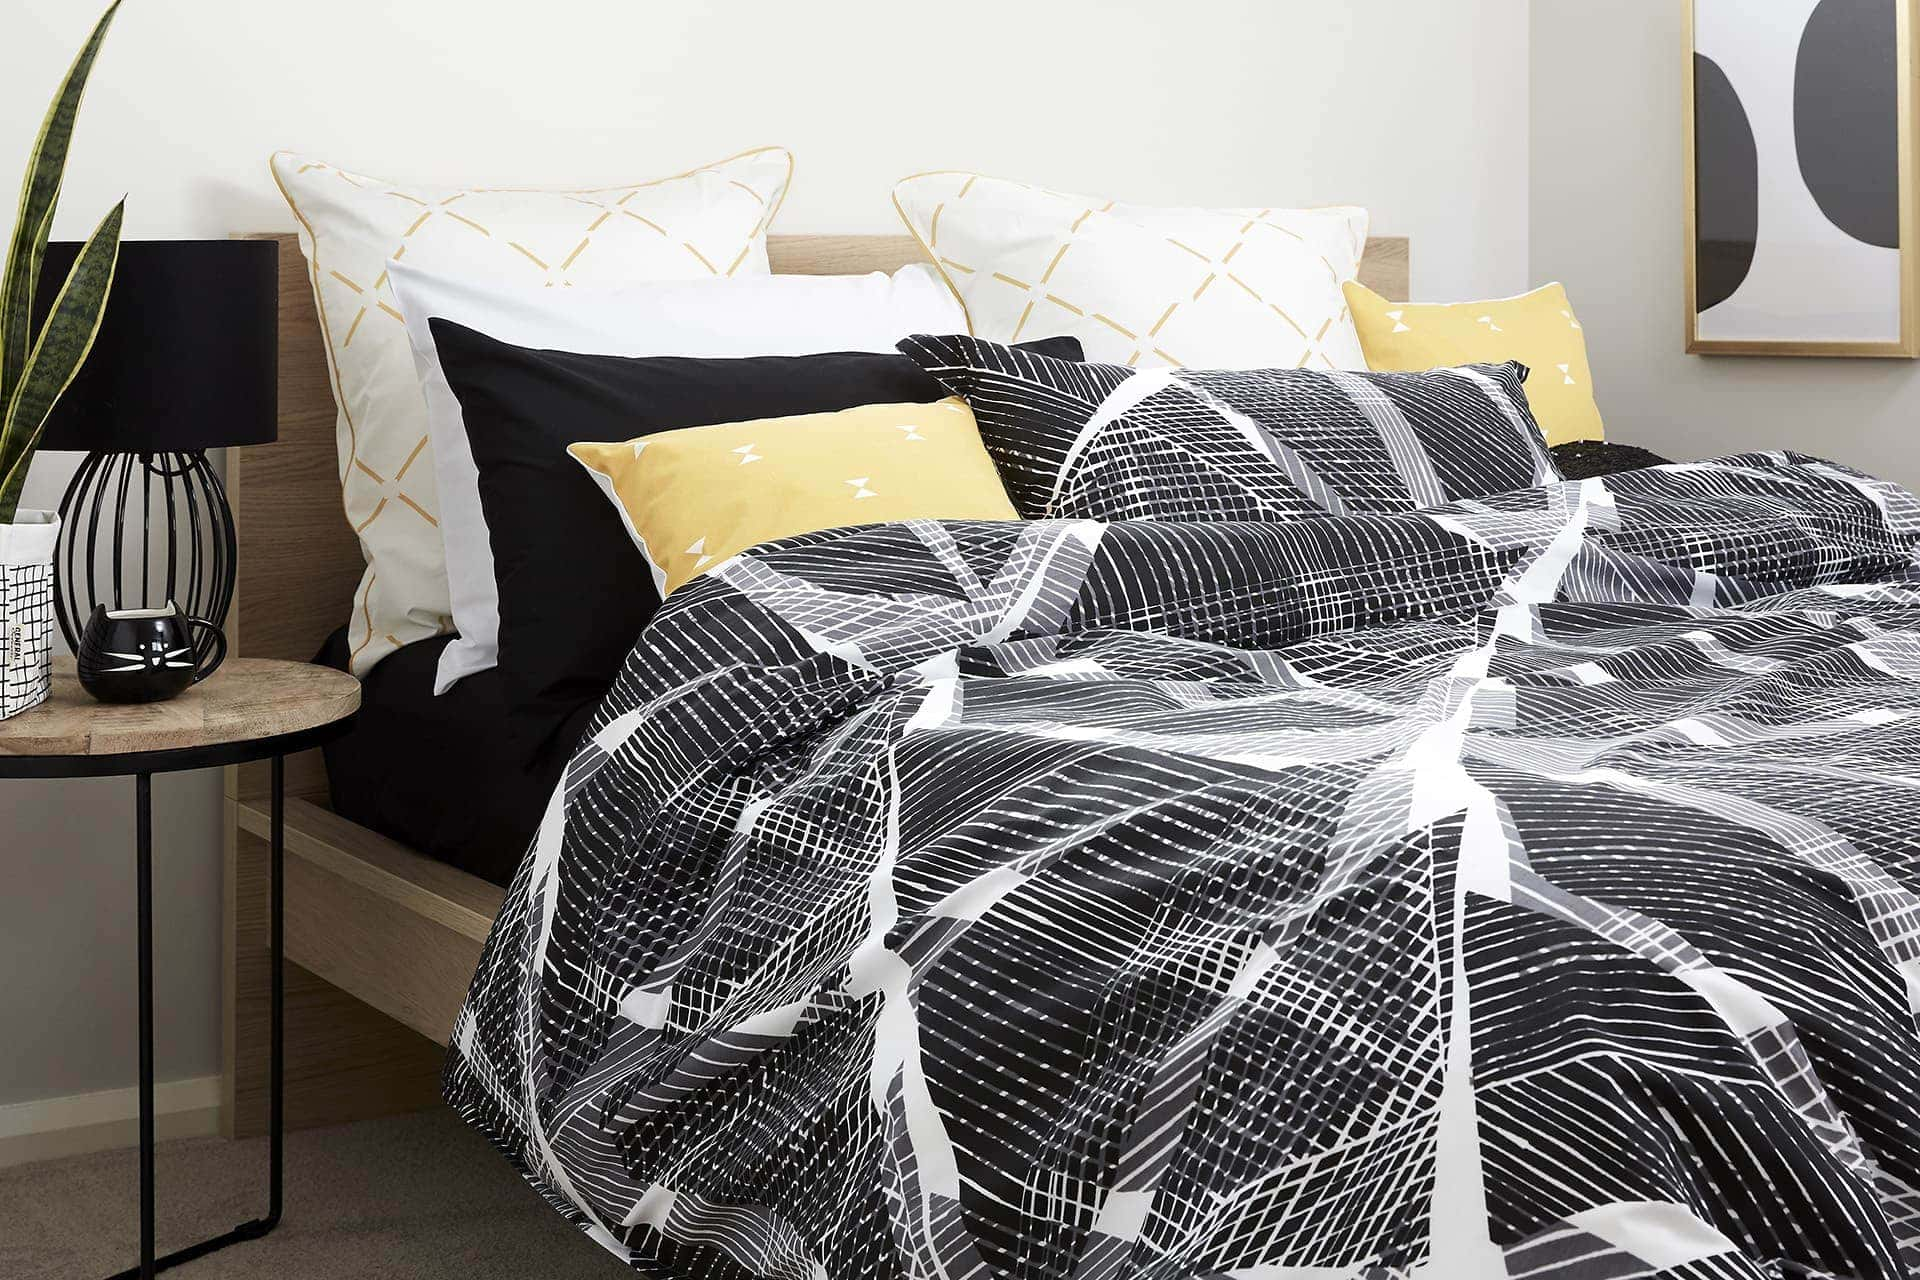 how to mix pattern at home in black and white bedroom with yellow euro cushions from lorraine lea